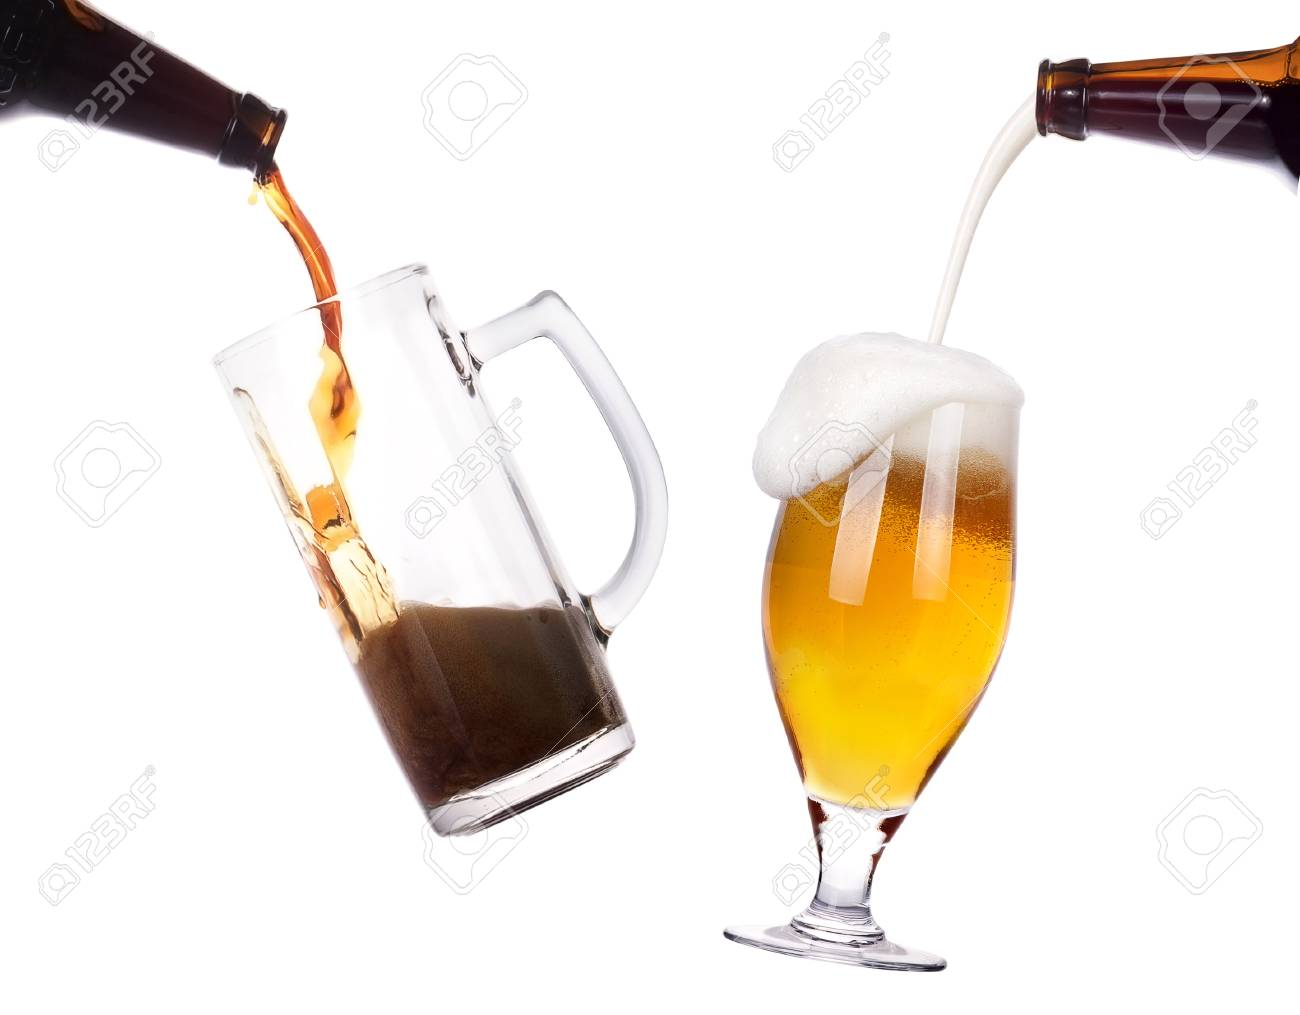 Frosty glass of light beer isolated on a white background Stock Photo - 16613553